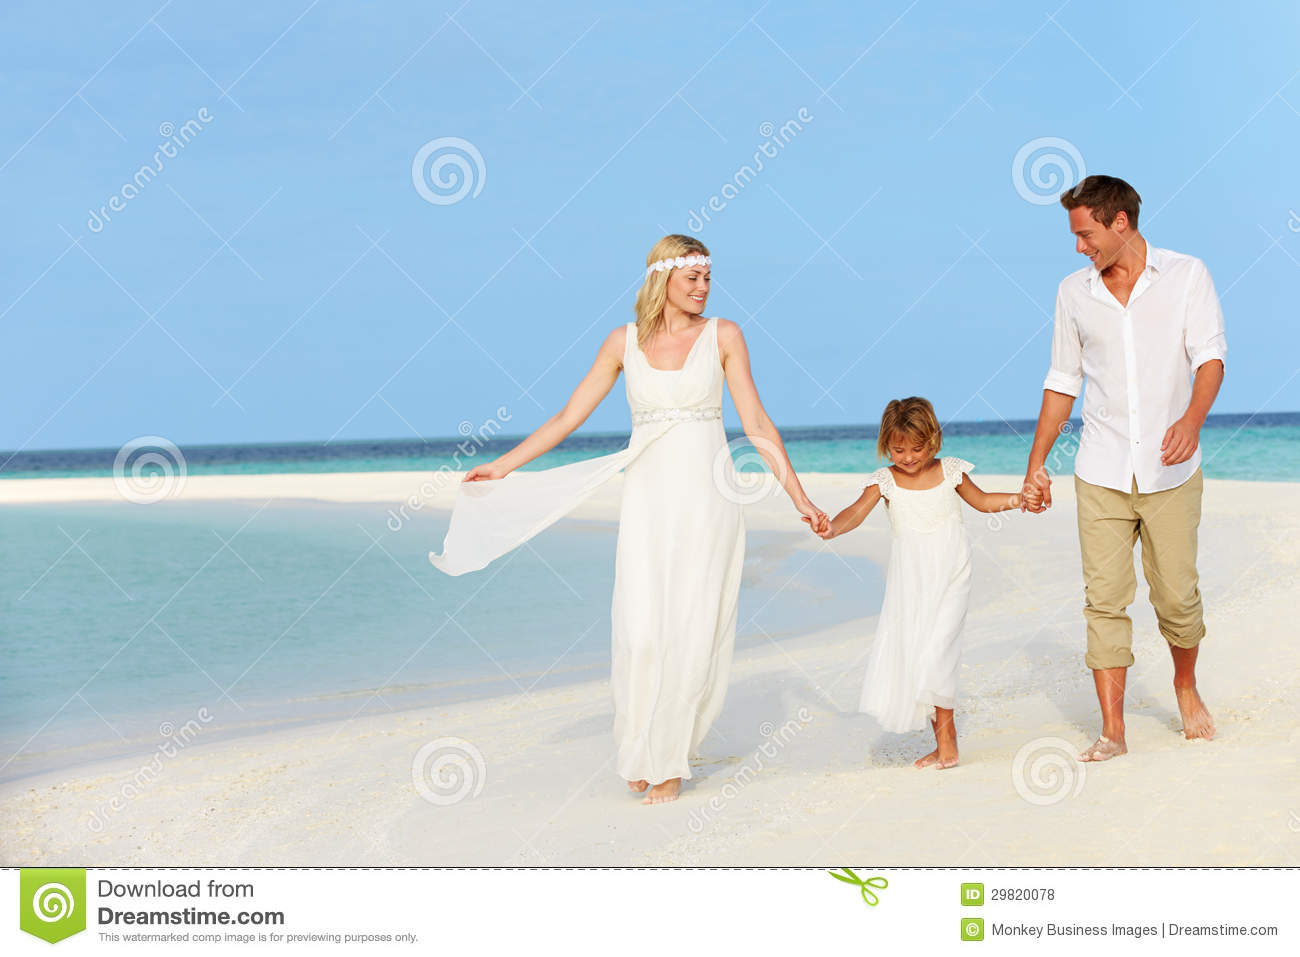 family at beautiful beach wedding royalty free stock photos image 29820078. Black Bedroom Furniture Sets. Home Design Ideas